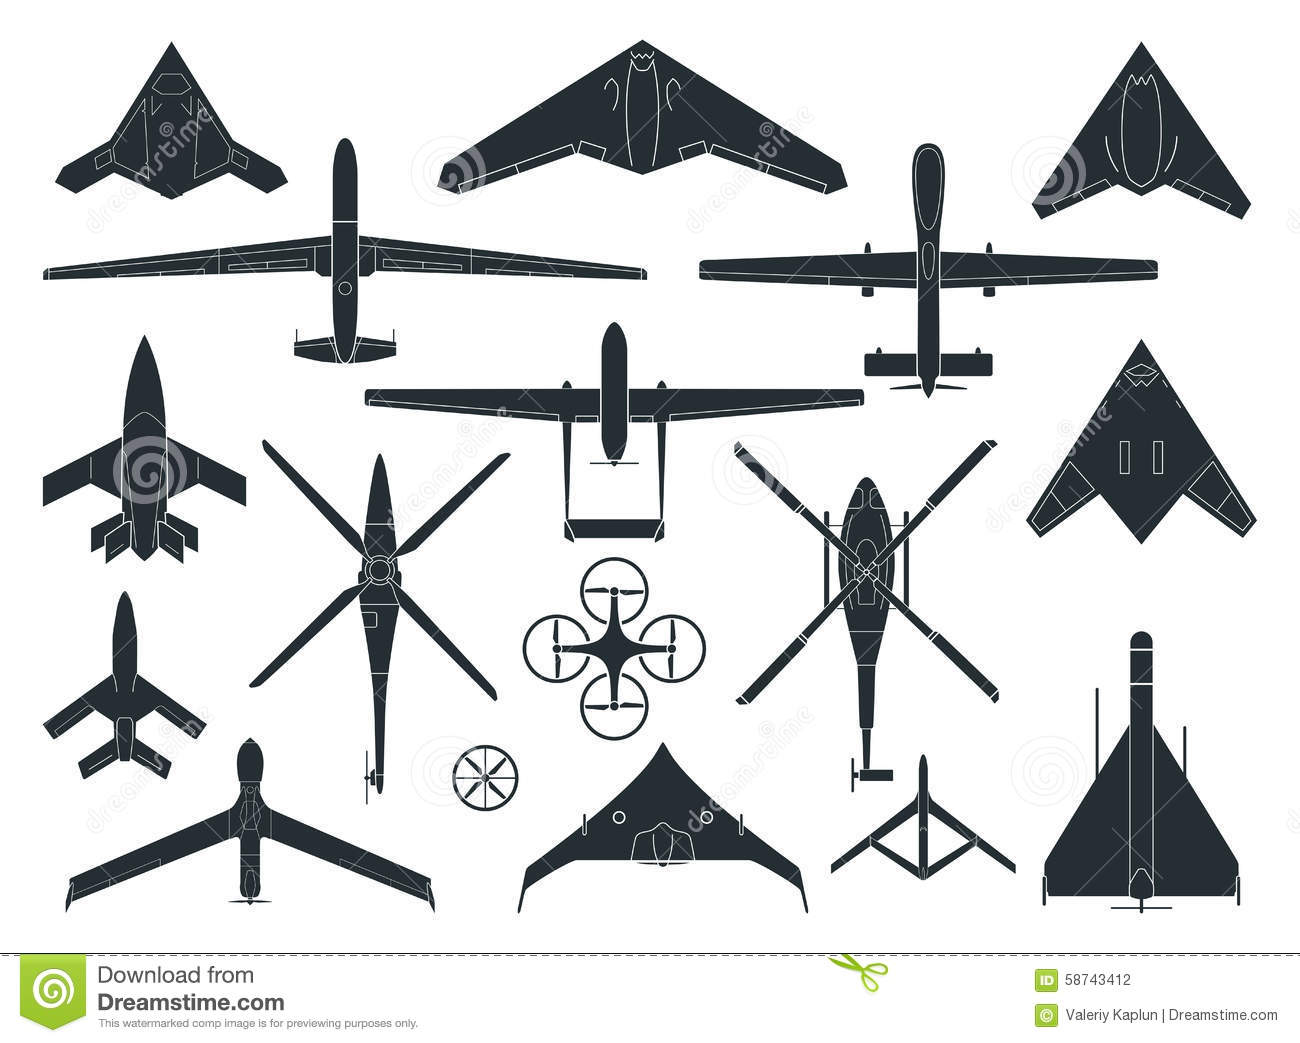 size of a reaper drone with Stock Illustration There Drones Vector Illustration Dark Colors Set Drone Symbols Image58743412 on Wiped RAF Team Sitting 3 000 Miles Away Controversial Technology Remote Controlled Drone Attack additionally Starship size  parison chart 2014 also Mq 9 Reaper together with Warships Non Canon in addition Neo Kaiju 397144281.